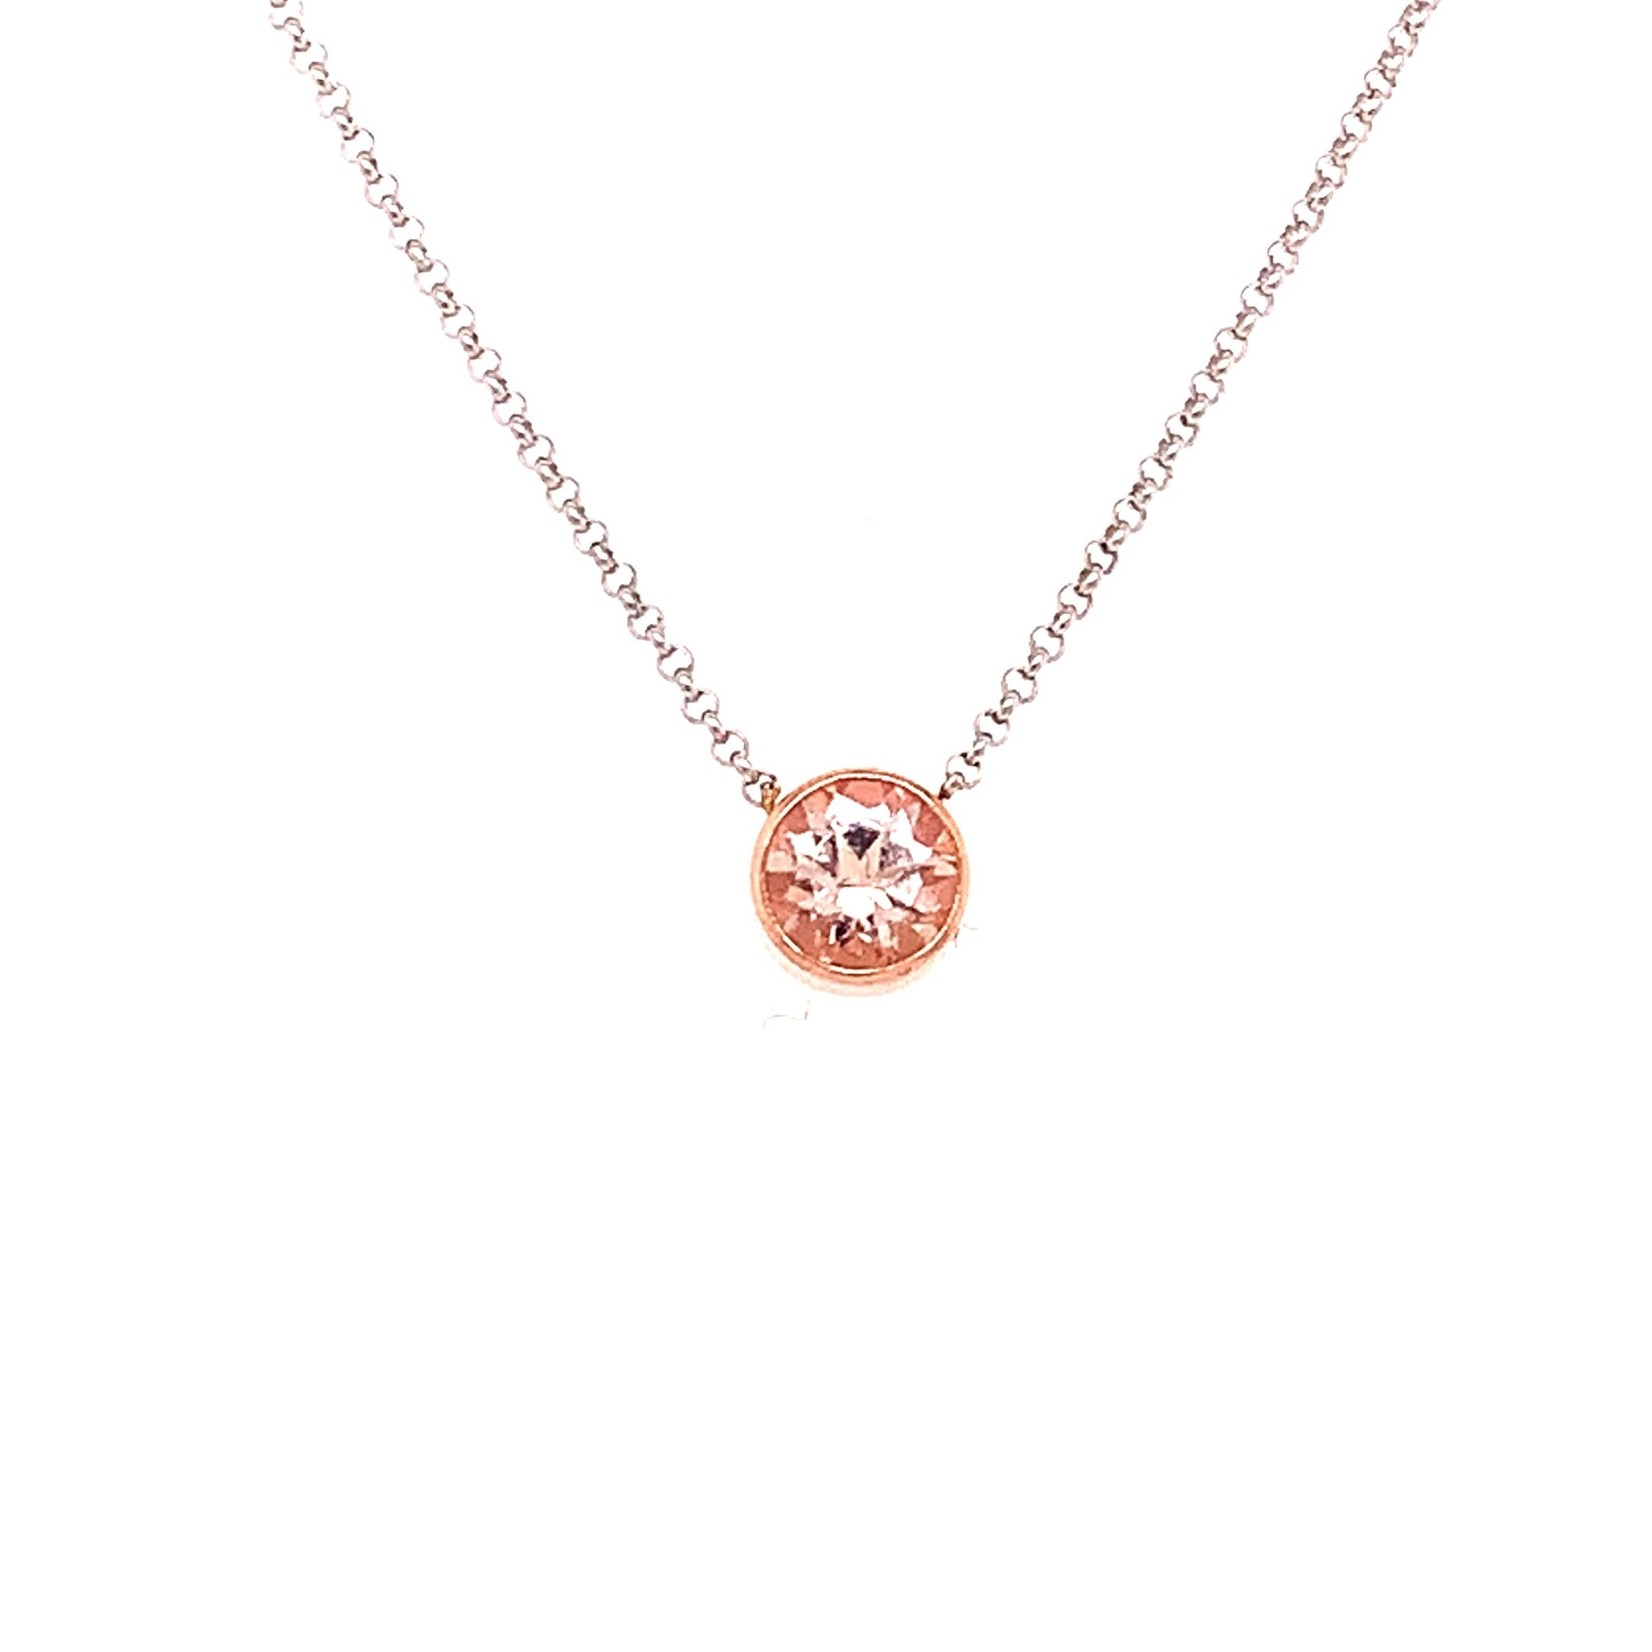 On The Edge Serendipity Necklace 10ktw